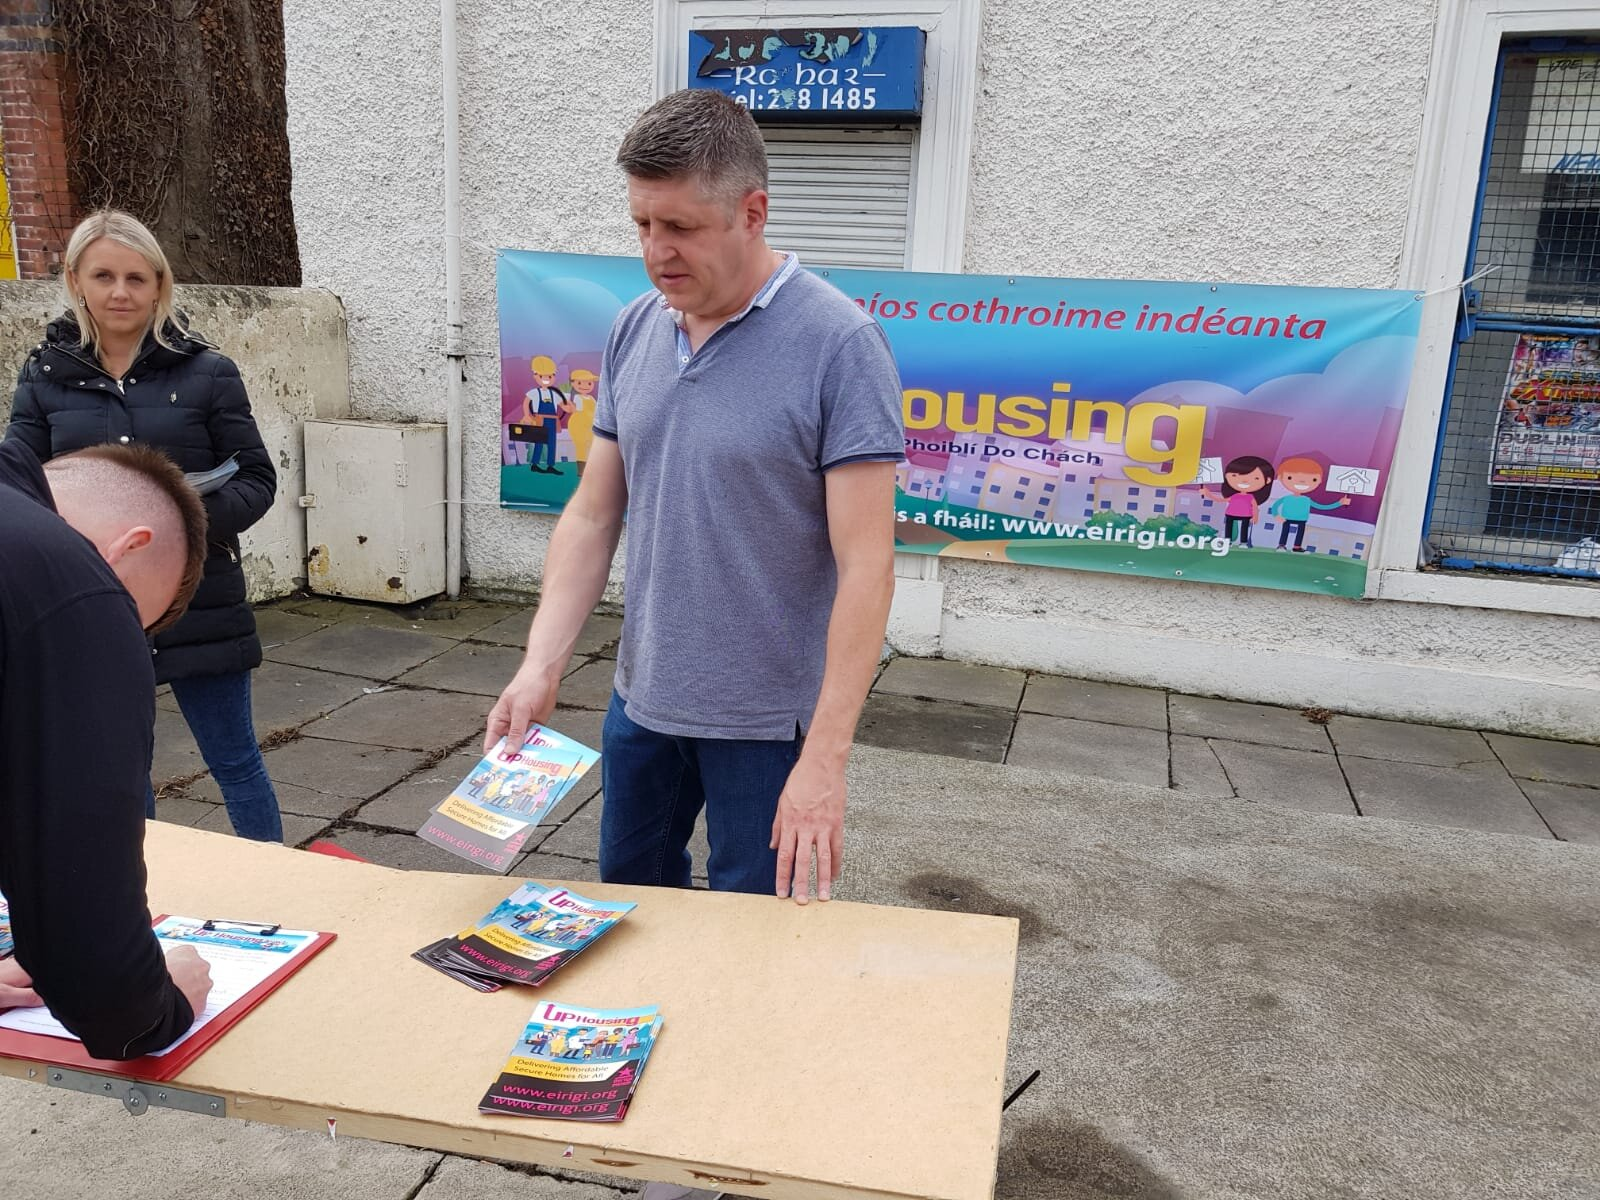 UP Housing information stall and petition in Dundrum, Dublin.